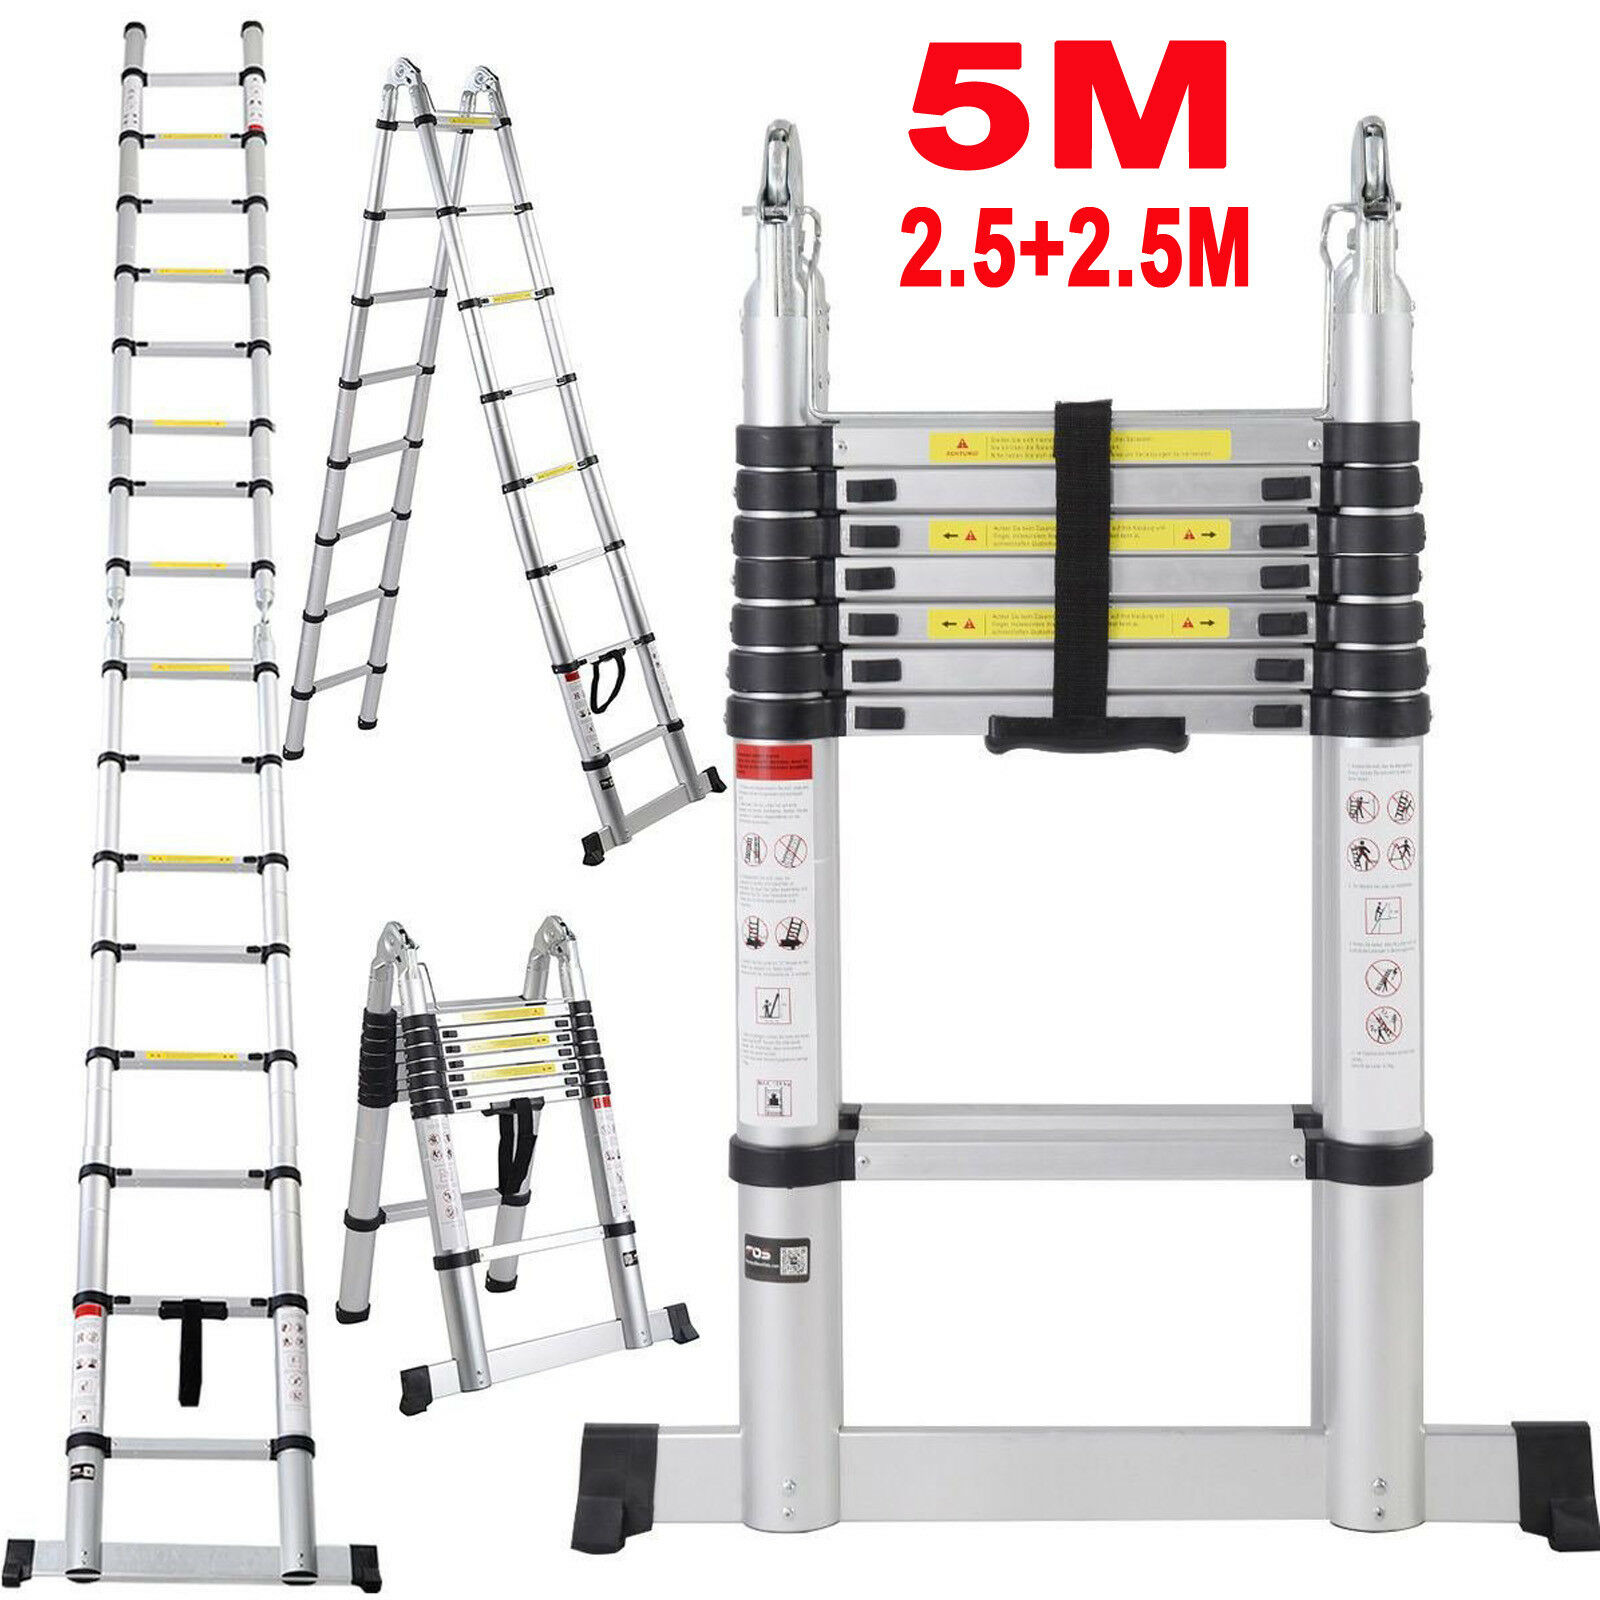 16.4ft 5M (2.5+2.5M) Folding Telescopic Ladder Foldable and Extenable A-Shape